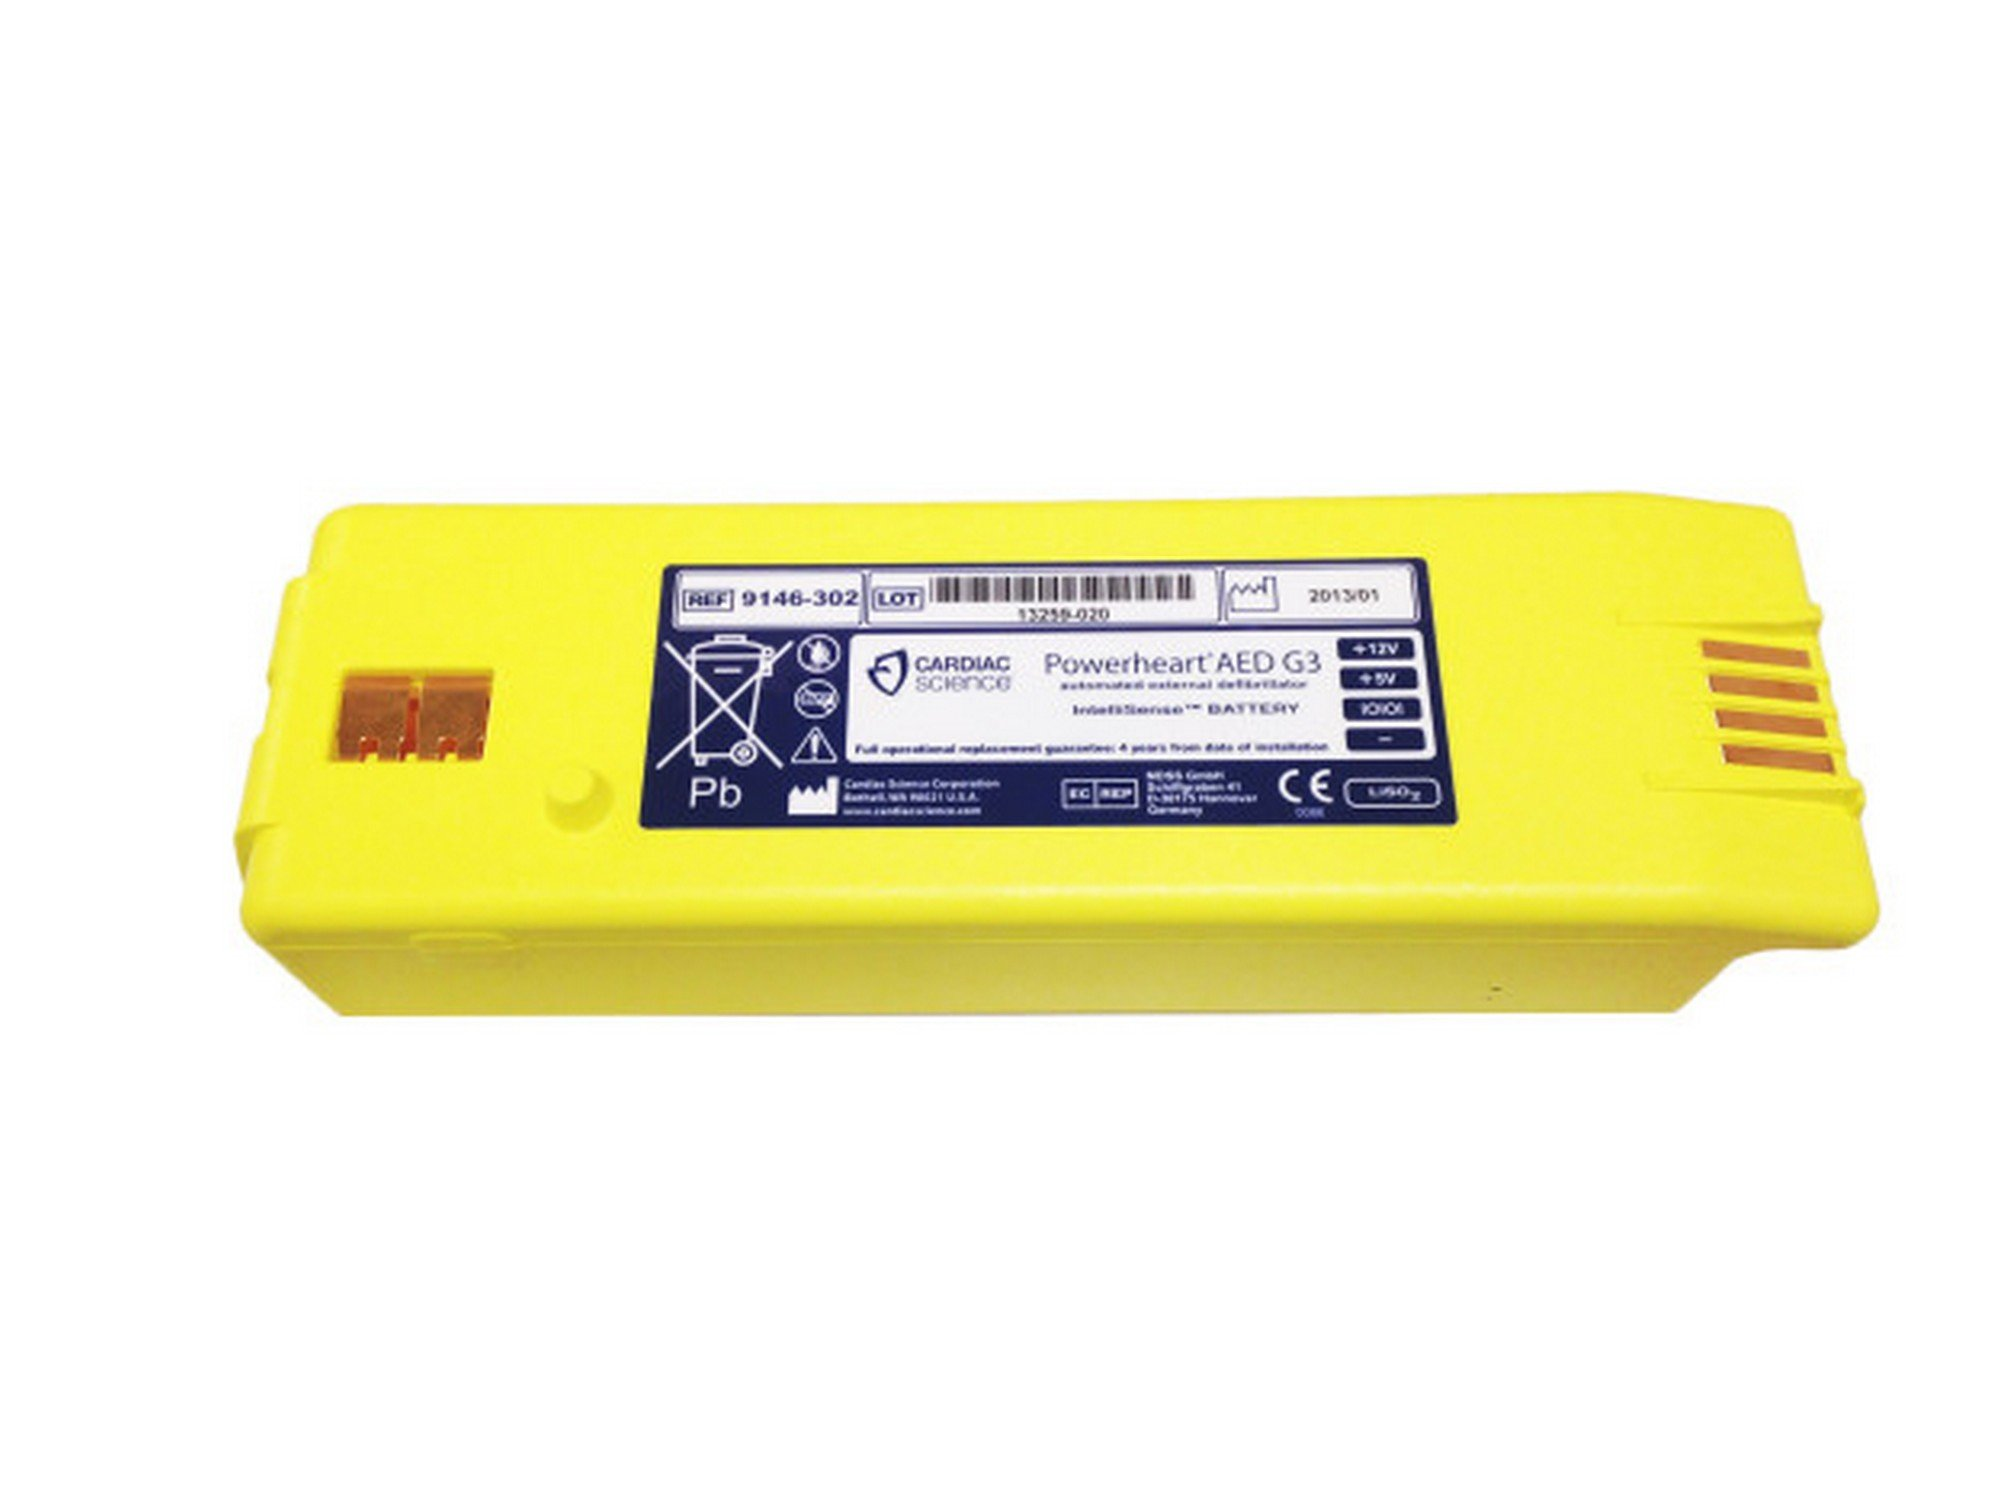 Cardiac Science IntelliSense Lithium Battery - 9146-302